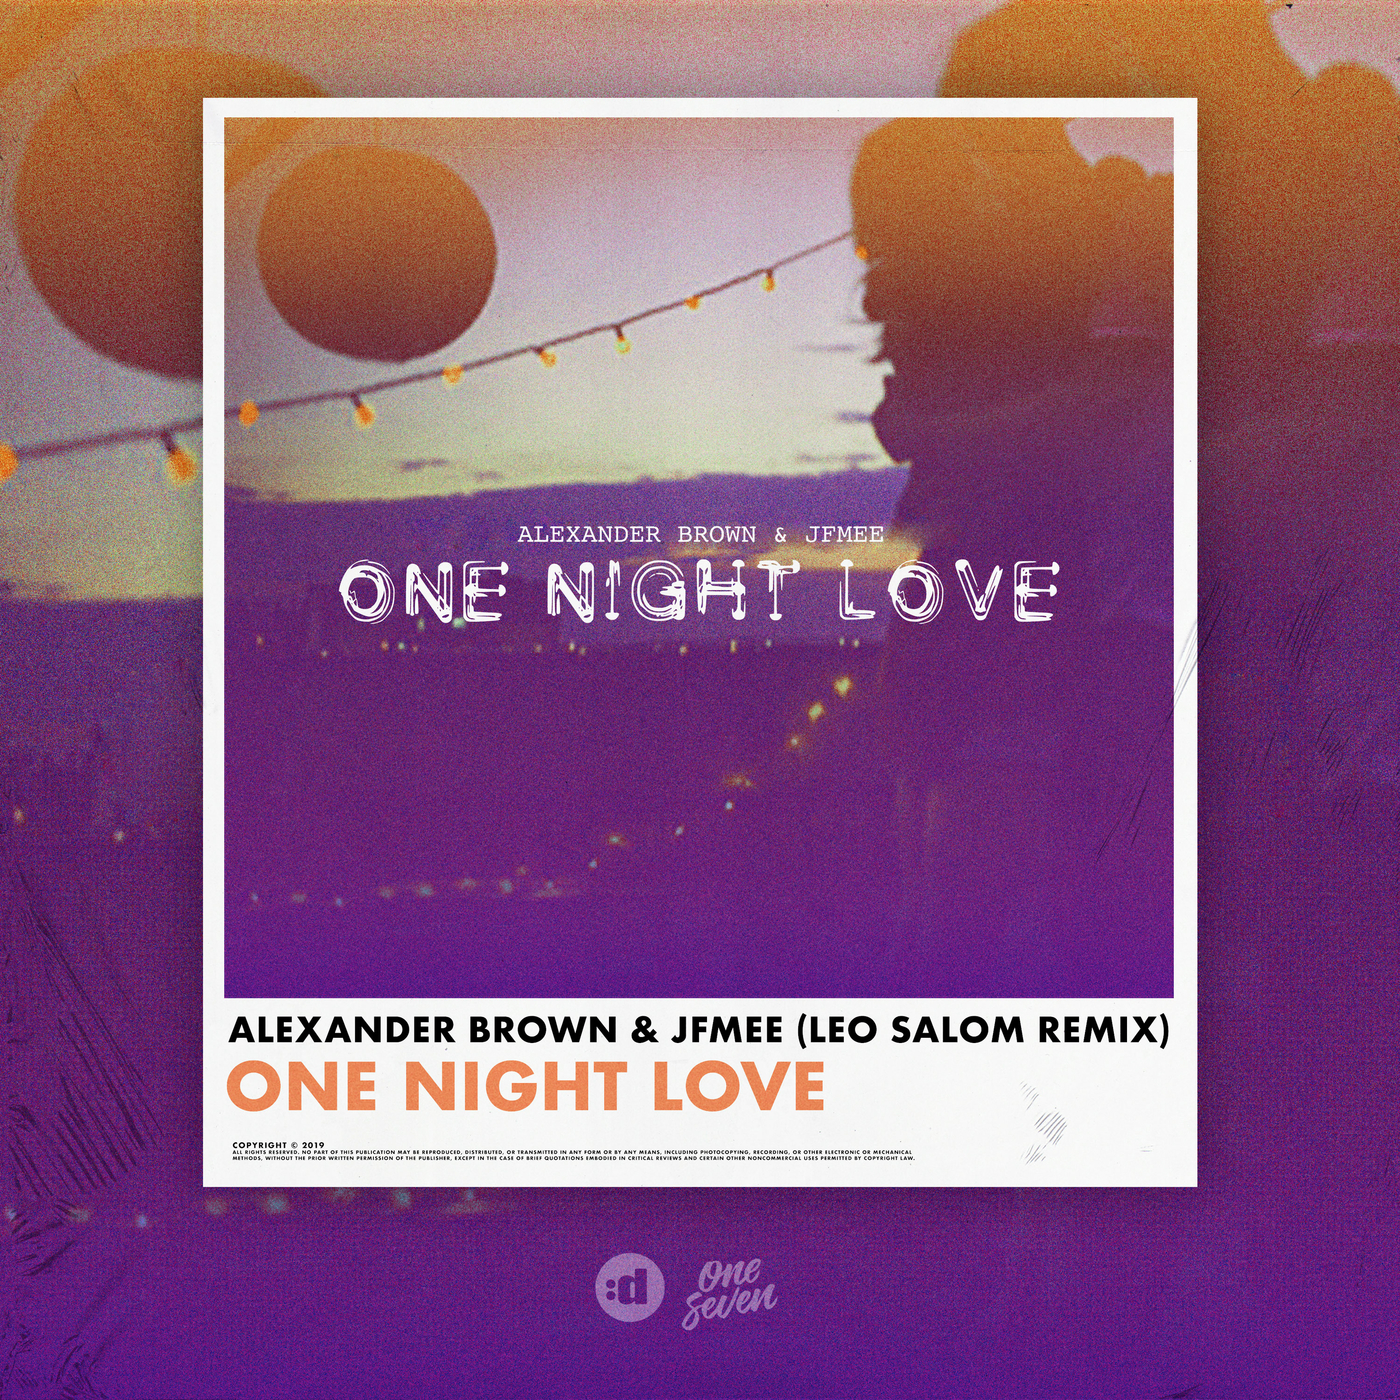 One Night Love (Leo Salom Remix) - Alexander Brown